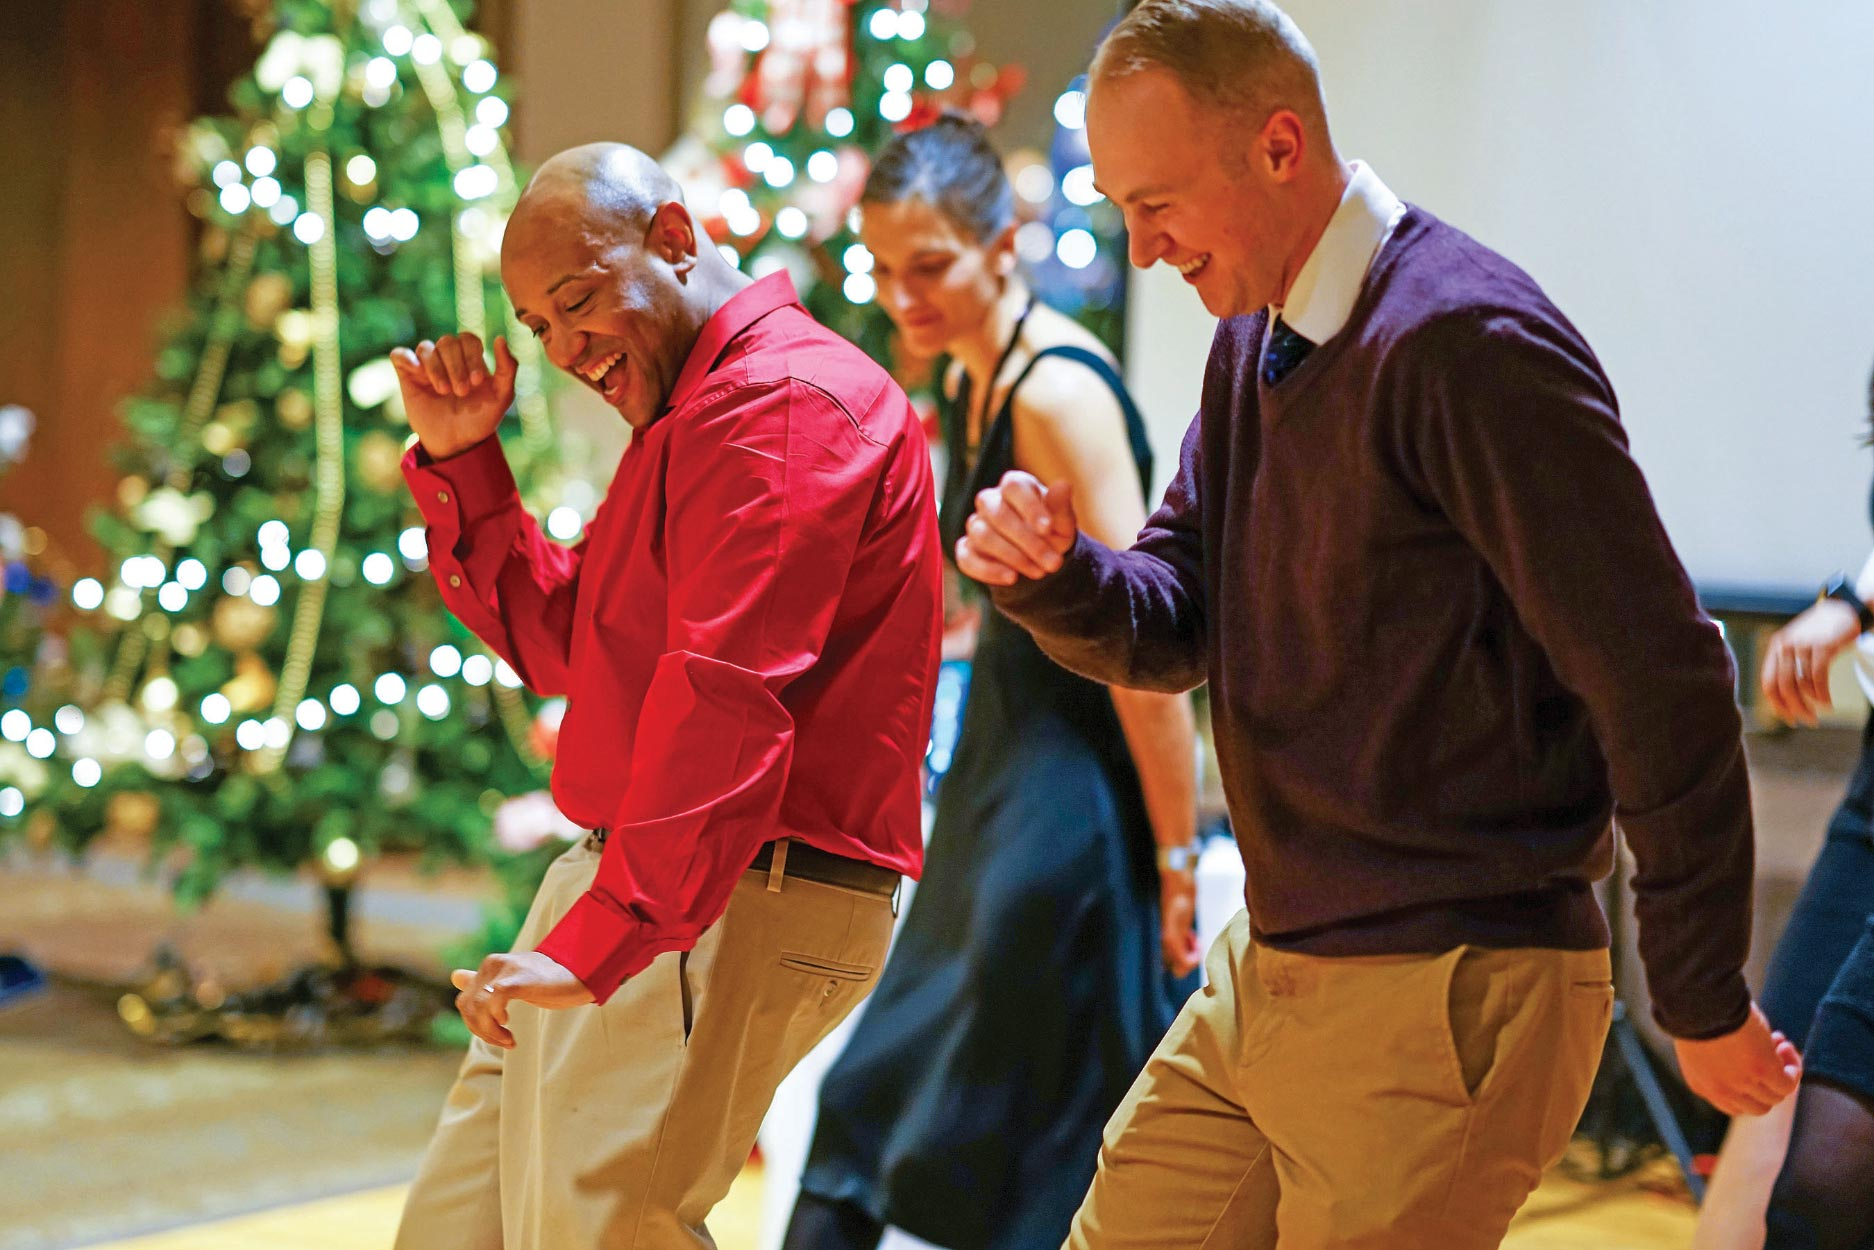 """U.S. Air Force photo by Christopher DeWitt Maj. Stephen Cash, 50th Comptroller Squadron commander, and 2nd Lt. Lucas Hash, Program Management Office program manager, dance during the Schriever Air Force Base """"Seasonal Celebrations around the World"""" holiday party at Peterson Air Force Base, Colorado, Dec. 1, 2017. Cash was one of several raffle winners to take home a prize that night."""